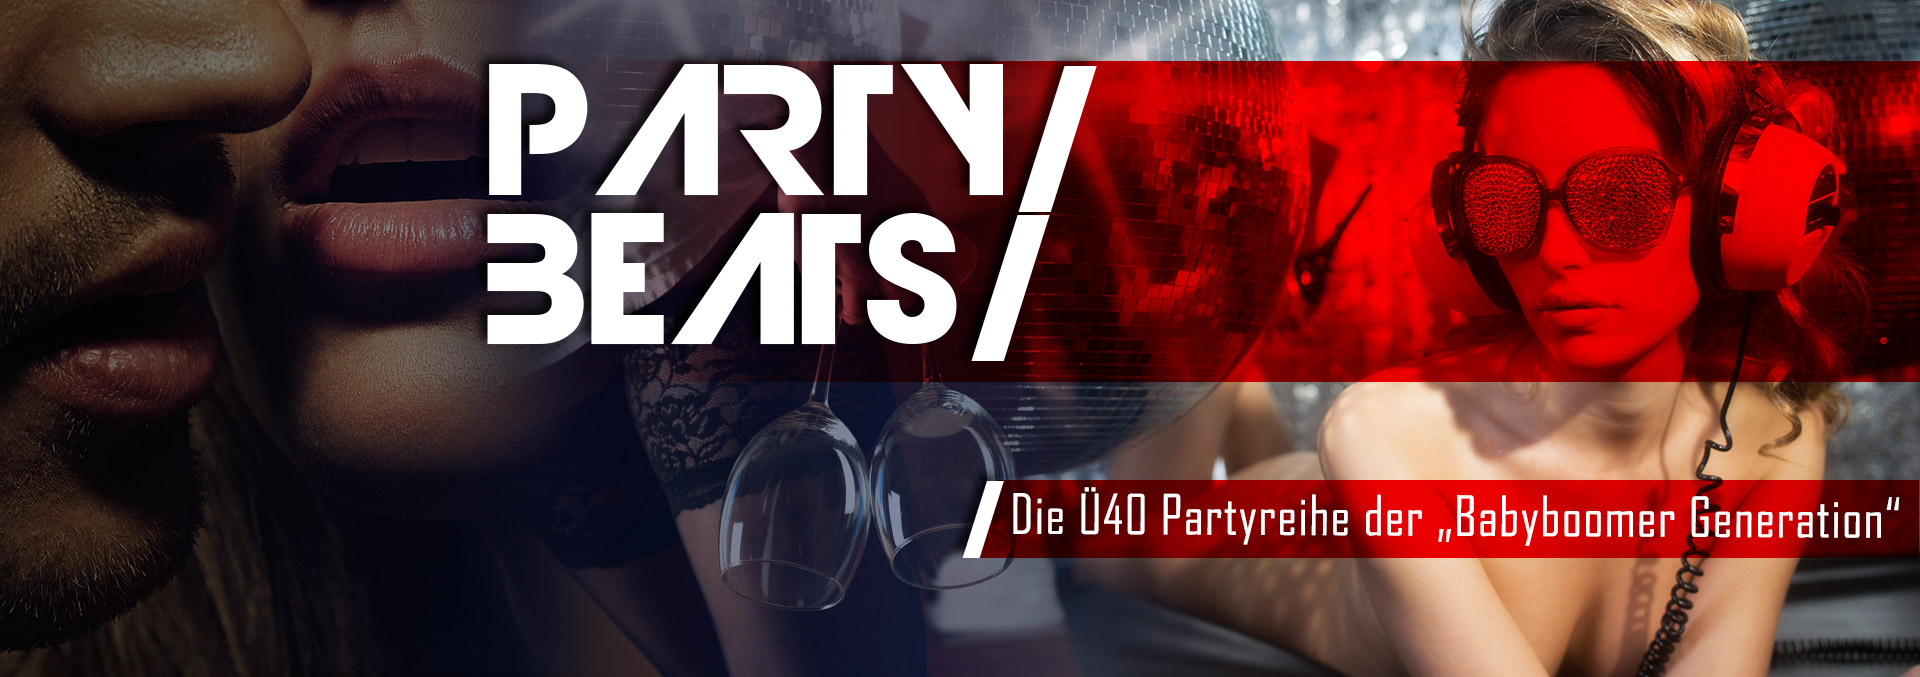 Party Beats 2020 II